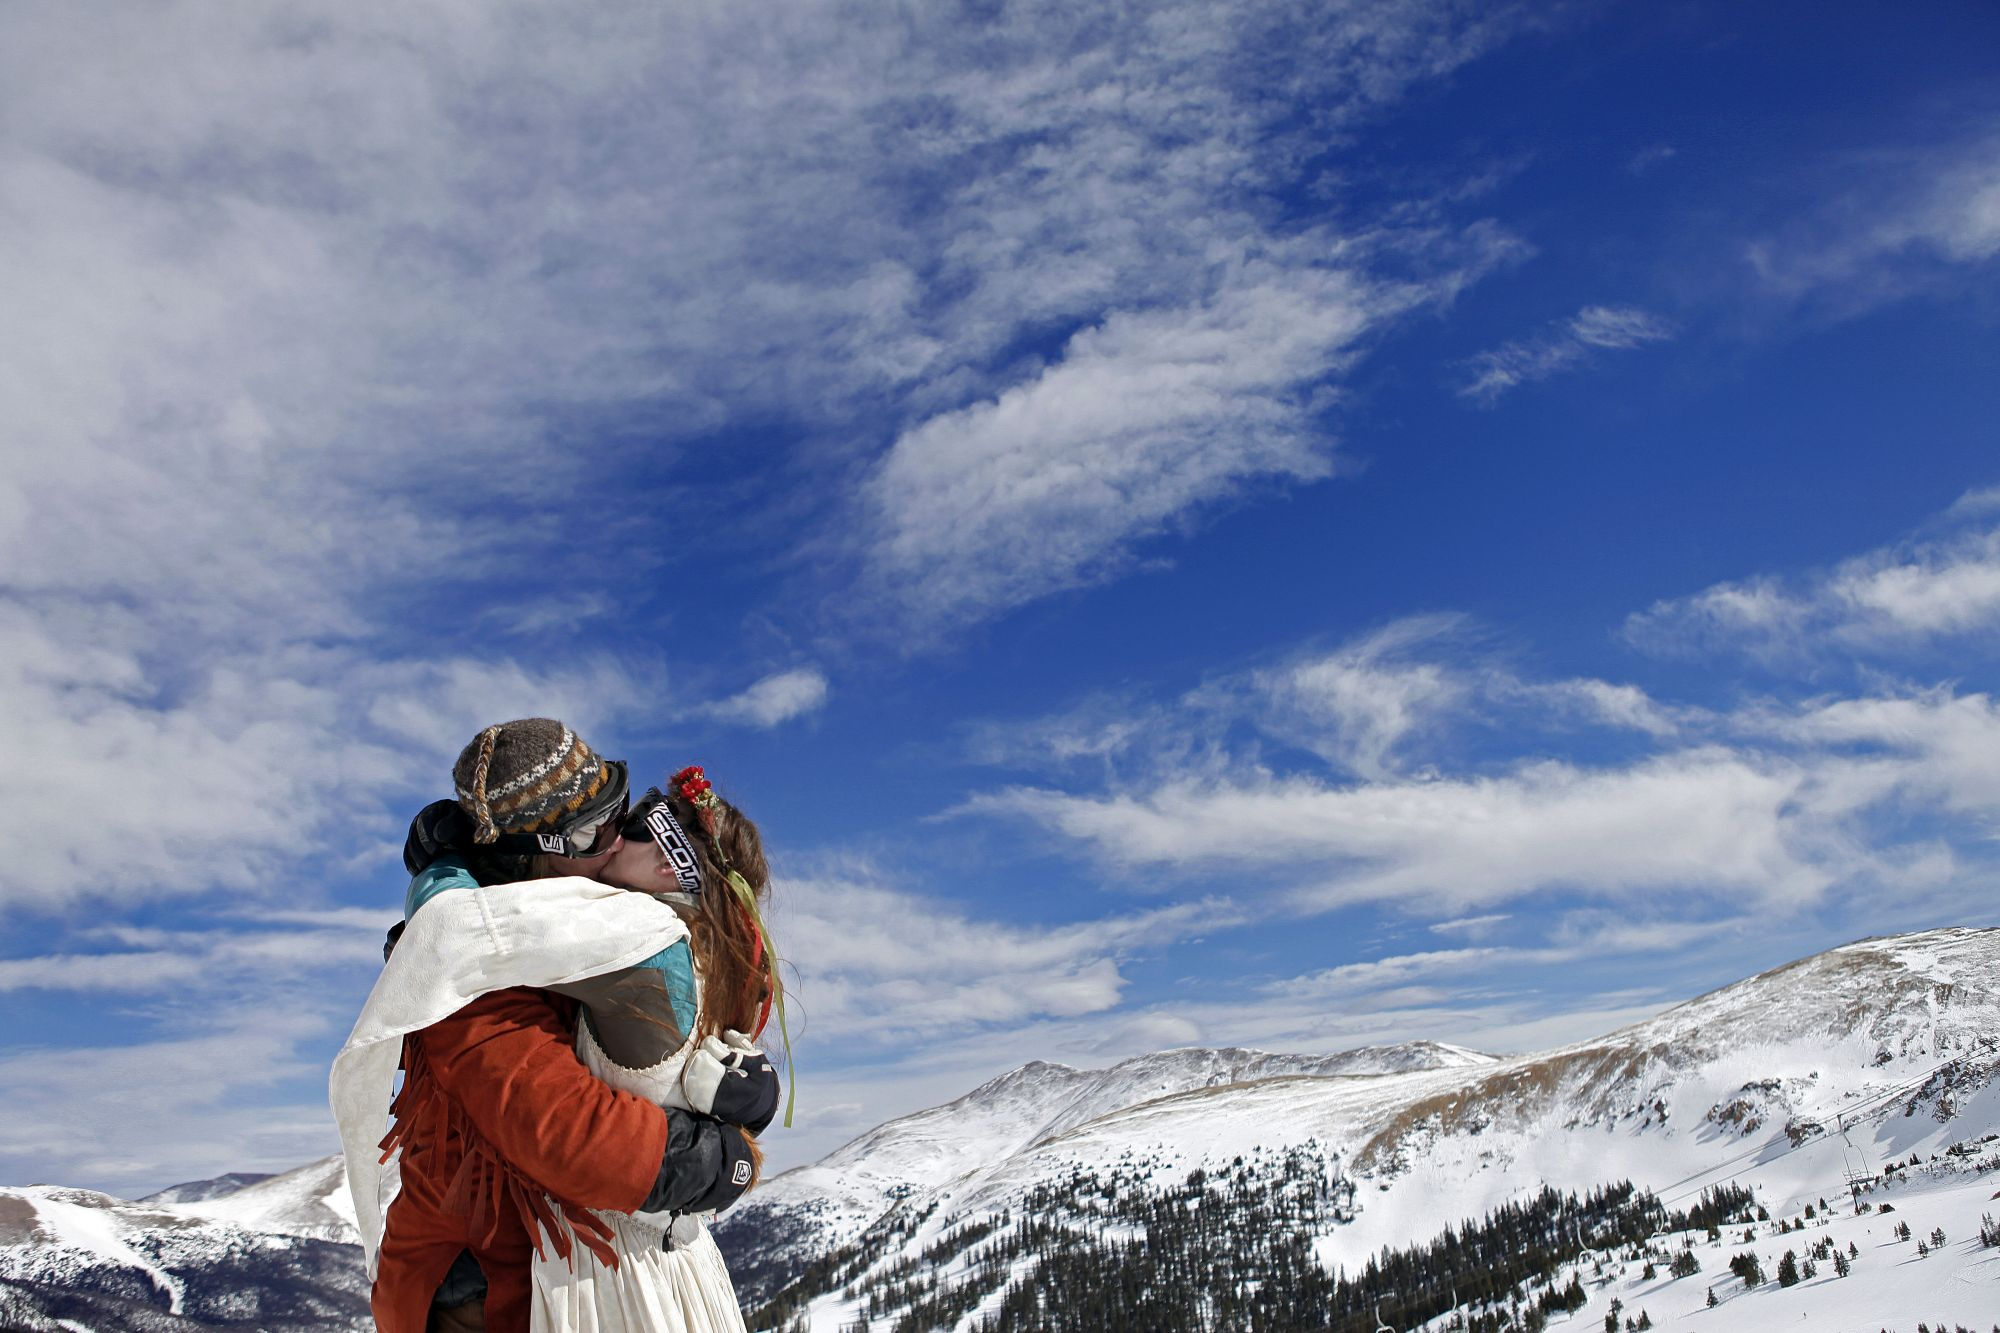 LOVELAND SKI AREA, CO - FEBRUARY 14: Elaine Vardamis (R) of Nederland, Co. kisses her husband Dan Vardamis after the couple renewed their vows at Loveland Ski Area in Colorado at the 20th Annual Marry Me & Ski Free Mountaintop Matrimony on Valentine's Day, February 14th in Loveland, Colorado. The mass wedding ceremony was held at noon at 12,050 feet outside of the Ptarmigan Roost Cabin at Loveland. More than 75 couples were pre-registered to get married or renew their vows high on The Continental Divide in